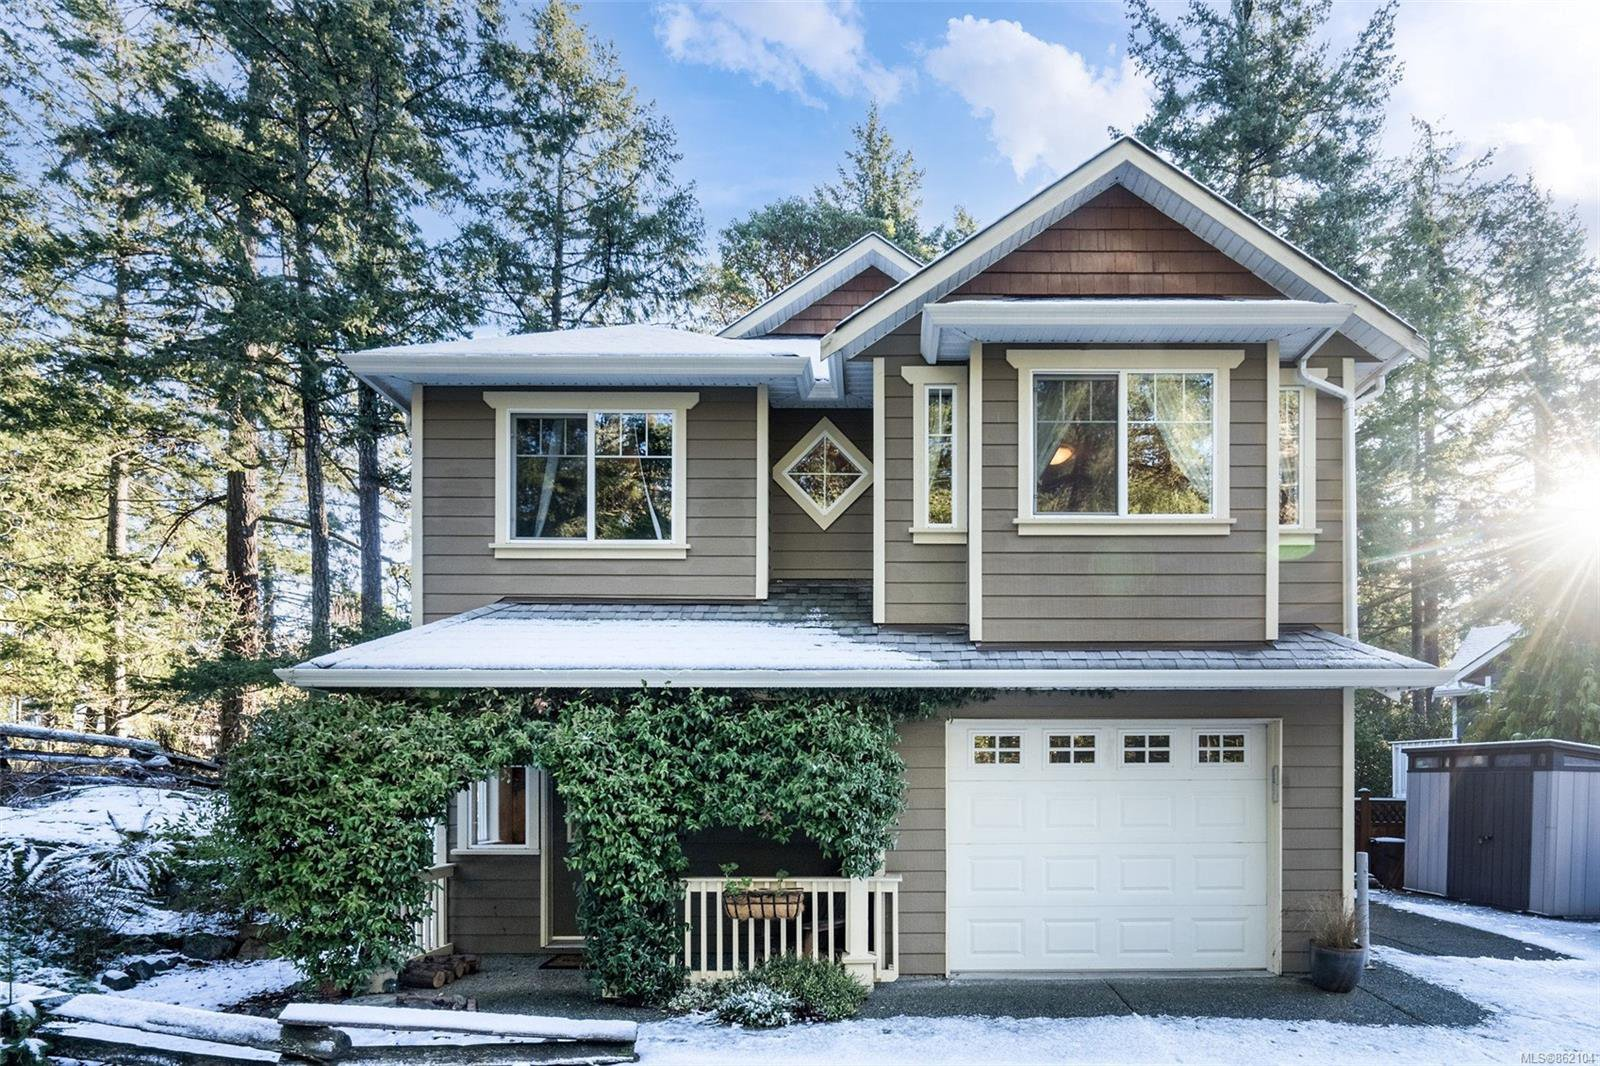 Main Photo: 2655 Millwoods Crt in : La Atkins House for sale (Langford)  : MLS®# 862104